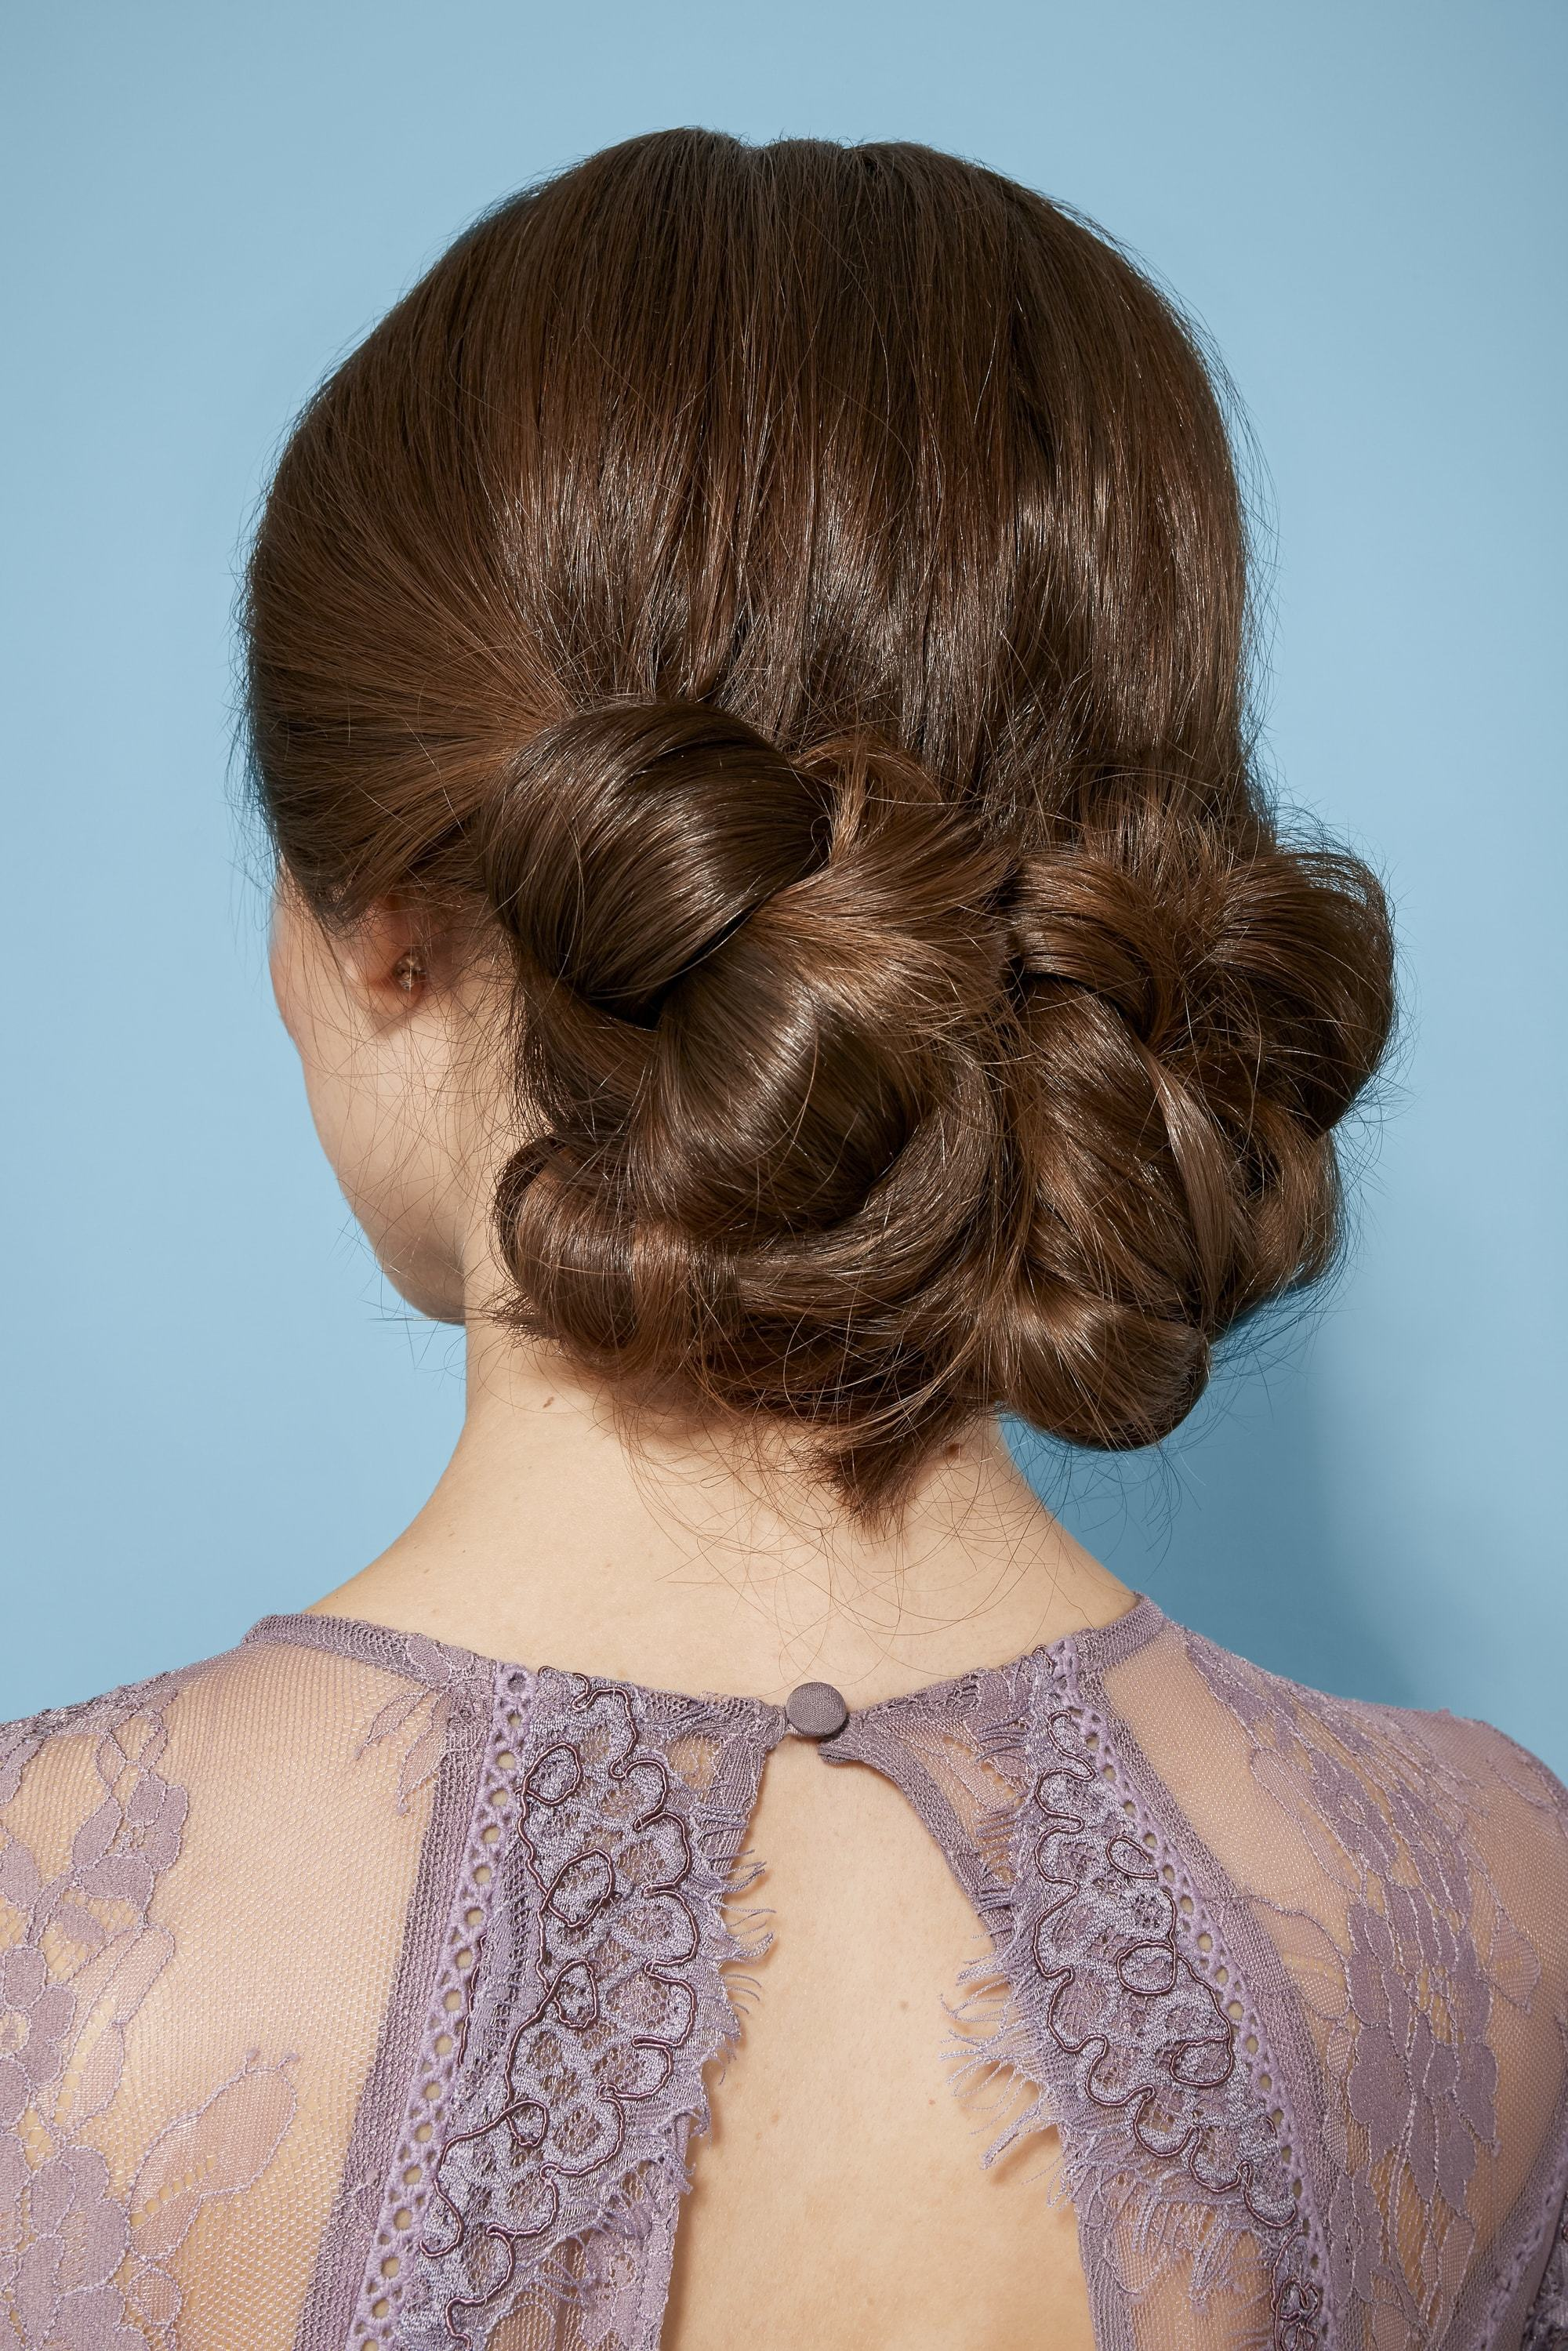 Brunette with low chignon updo